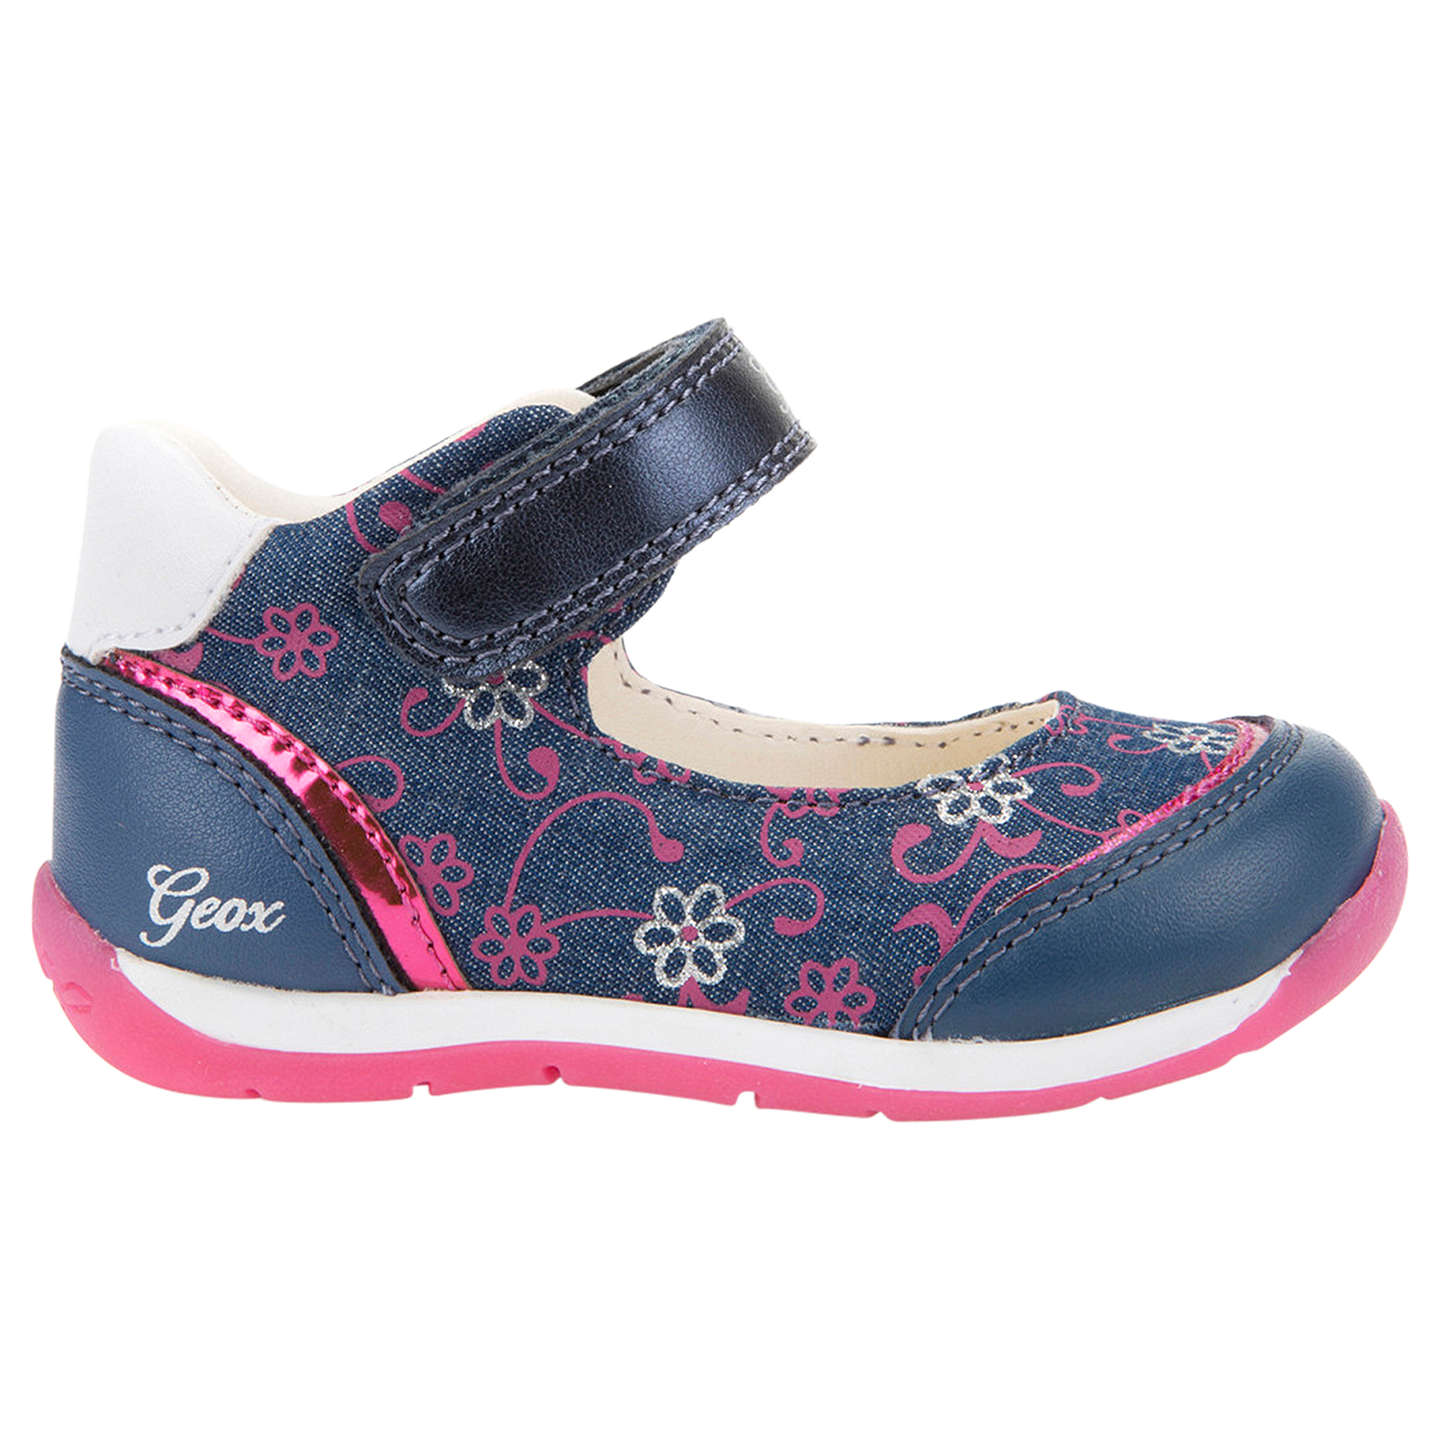 Geox Children s Beach Riptape Shoes Navy Pink at John Lewis